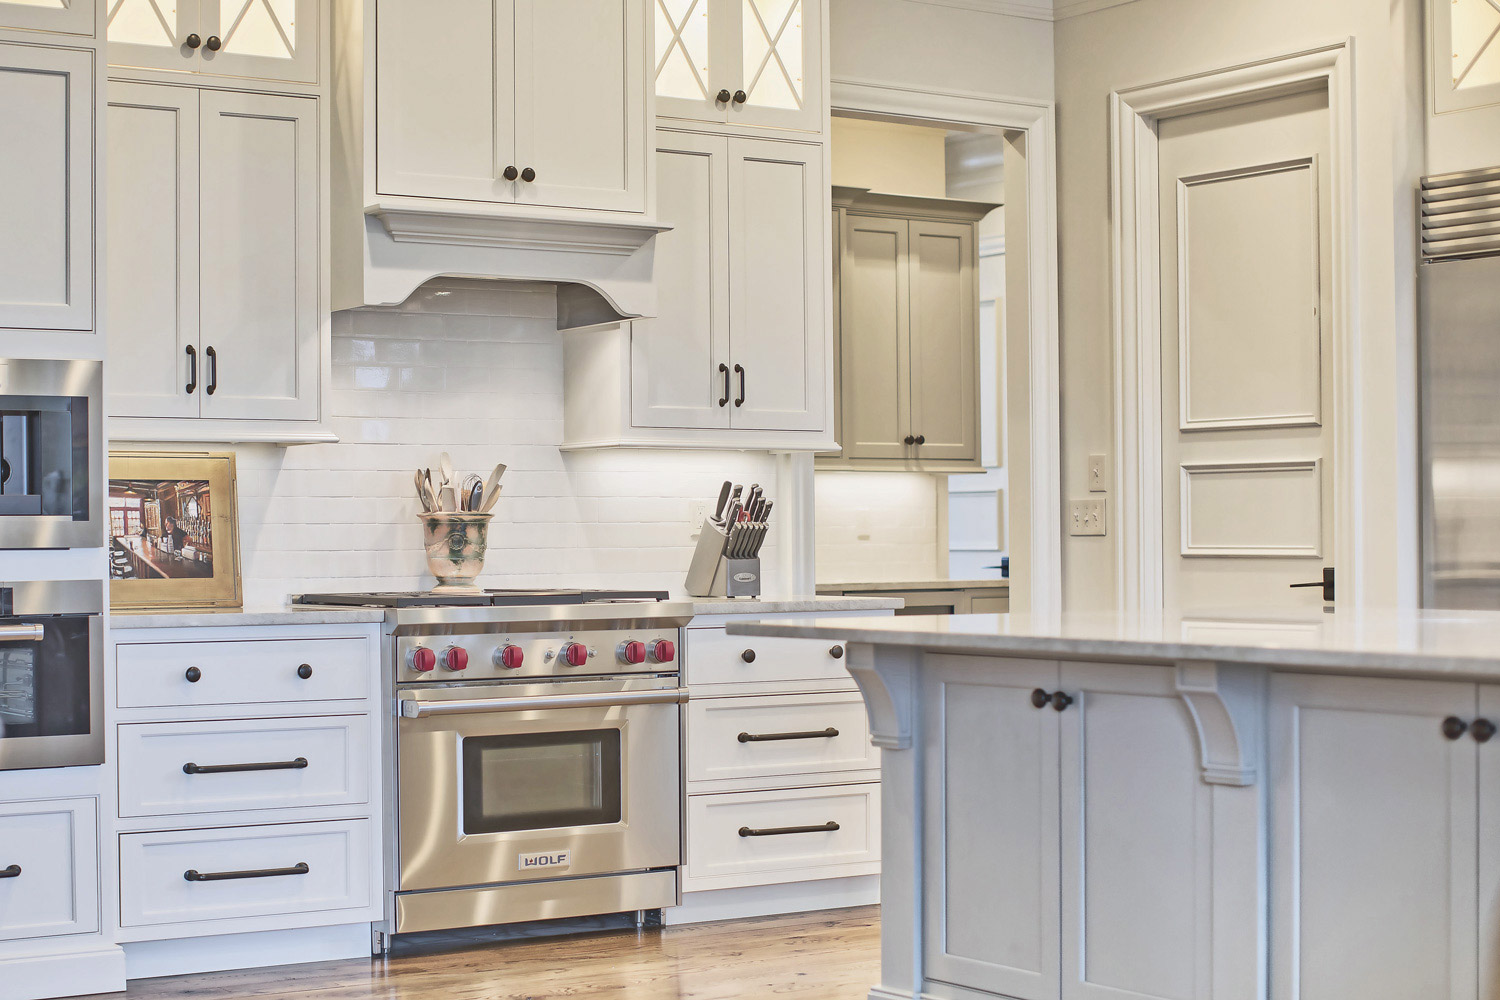 Is a Cooktop and Wall Oven or Range best for Your Kitchen ...